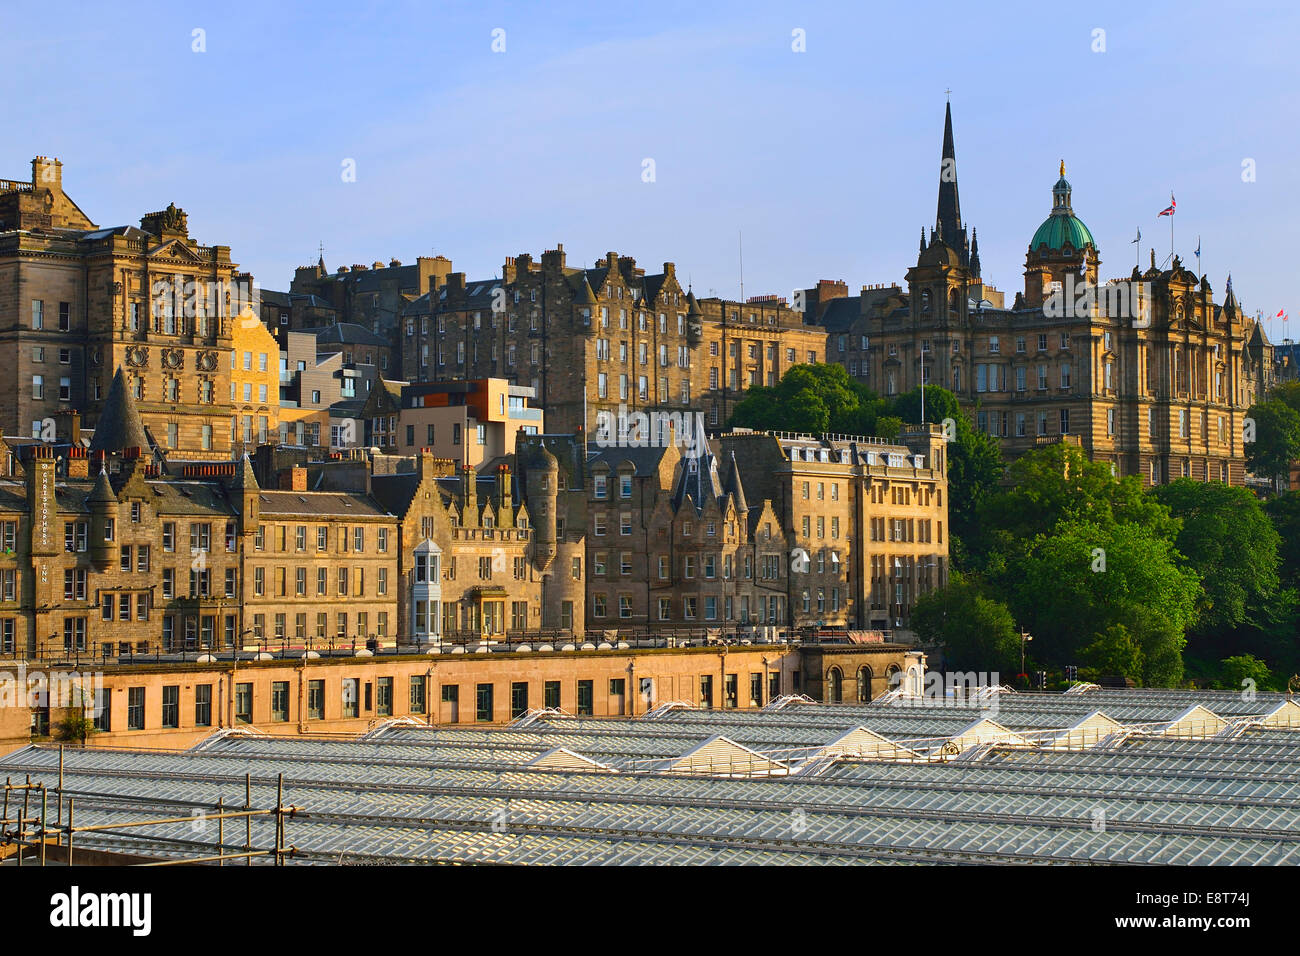 View over the roof of the main station on the city with the University of Edinburgh, Edinburgh, Scotland, United - Stock Image